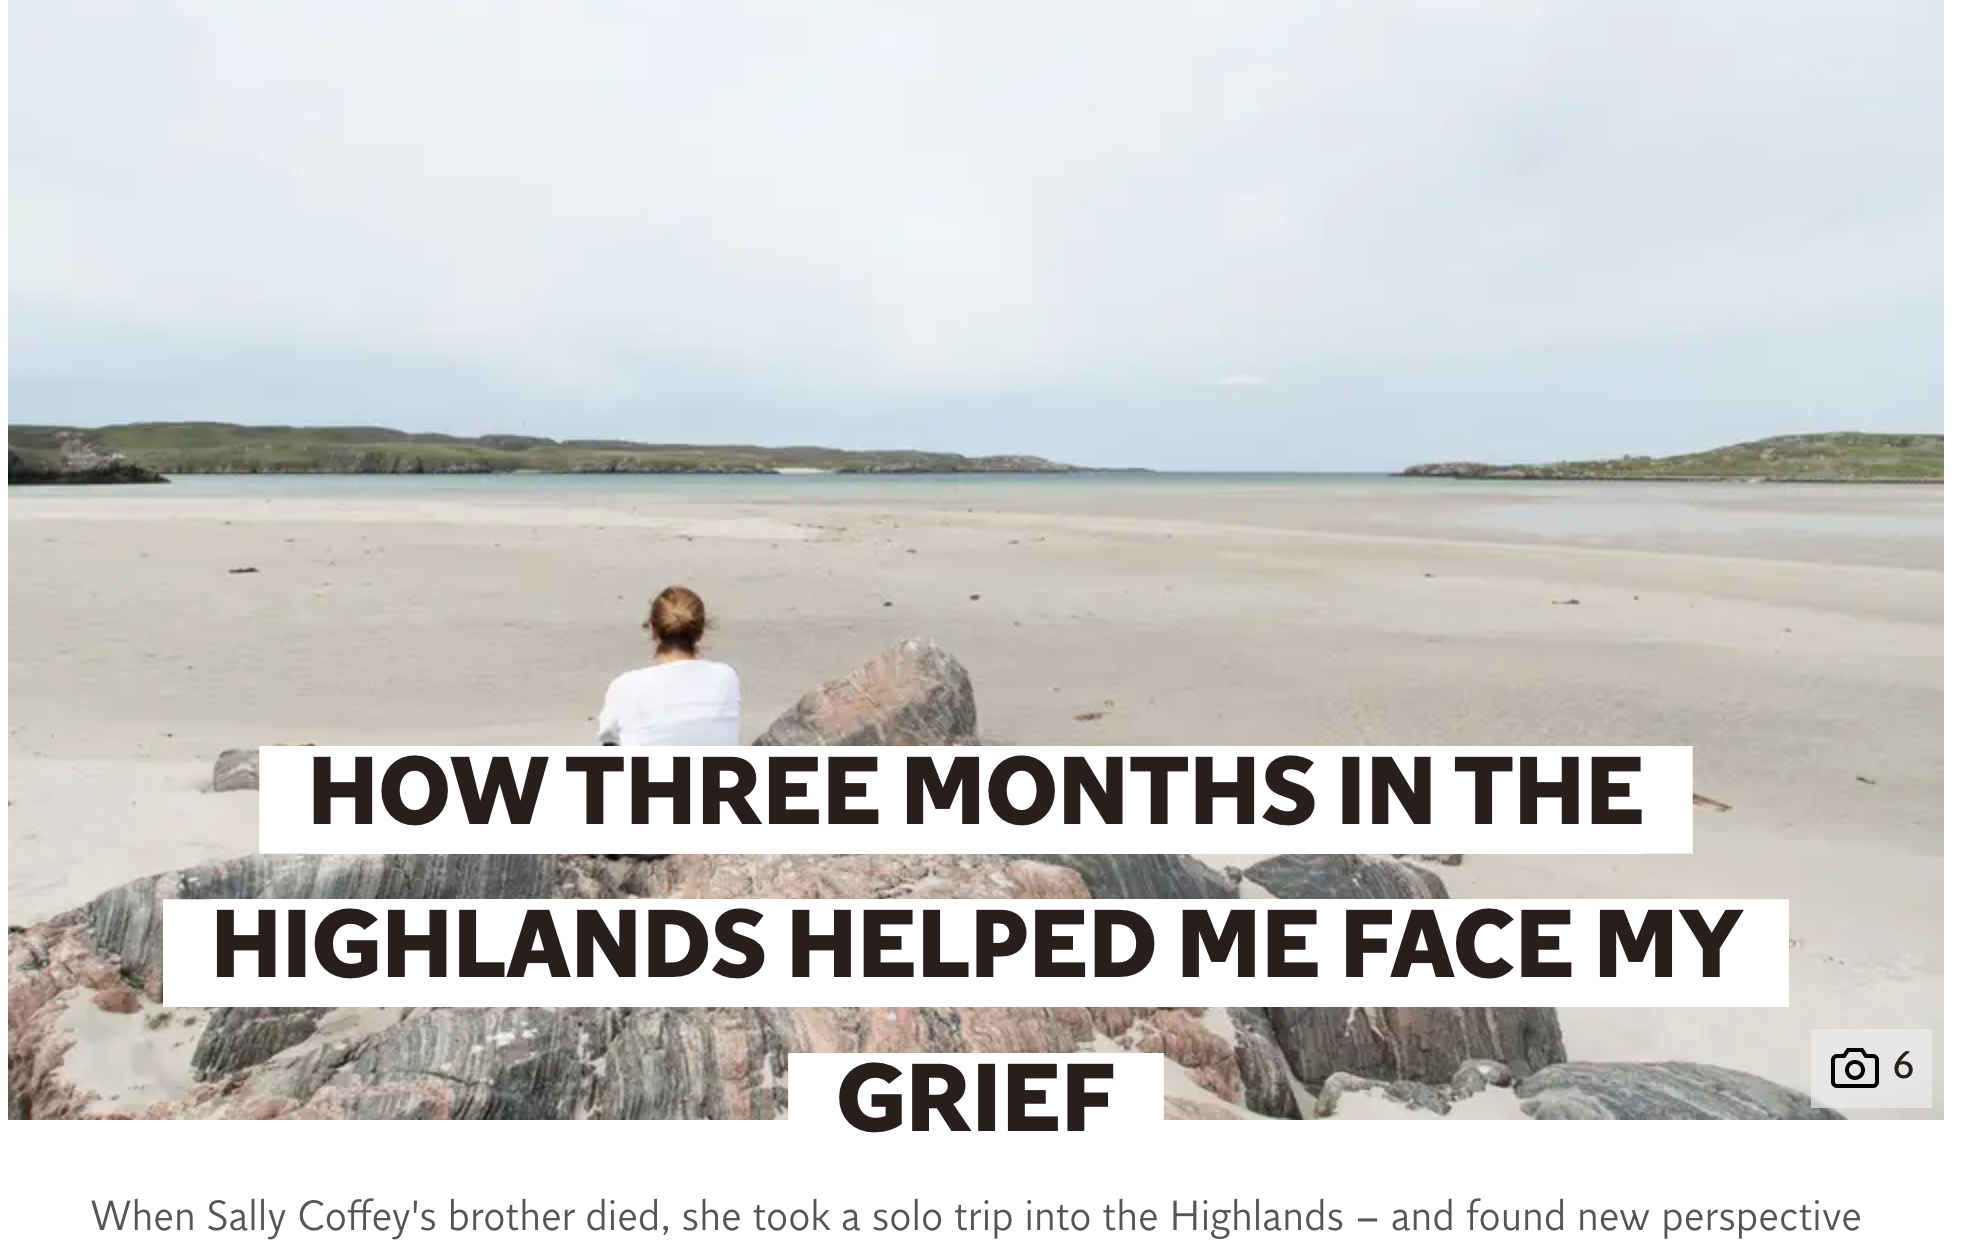 How travel helped me face my grief